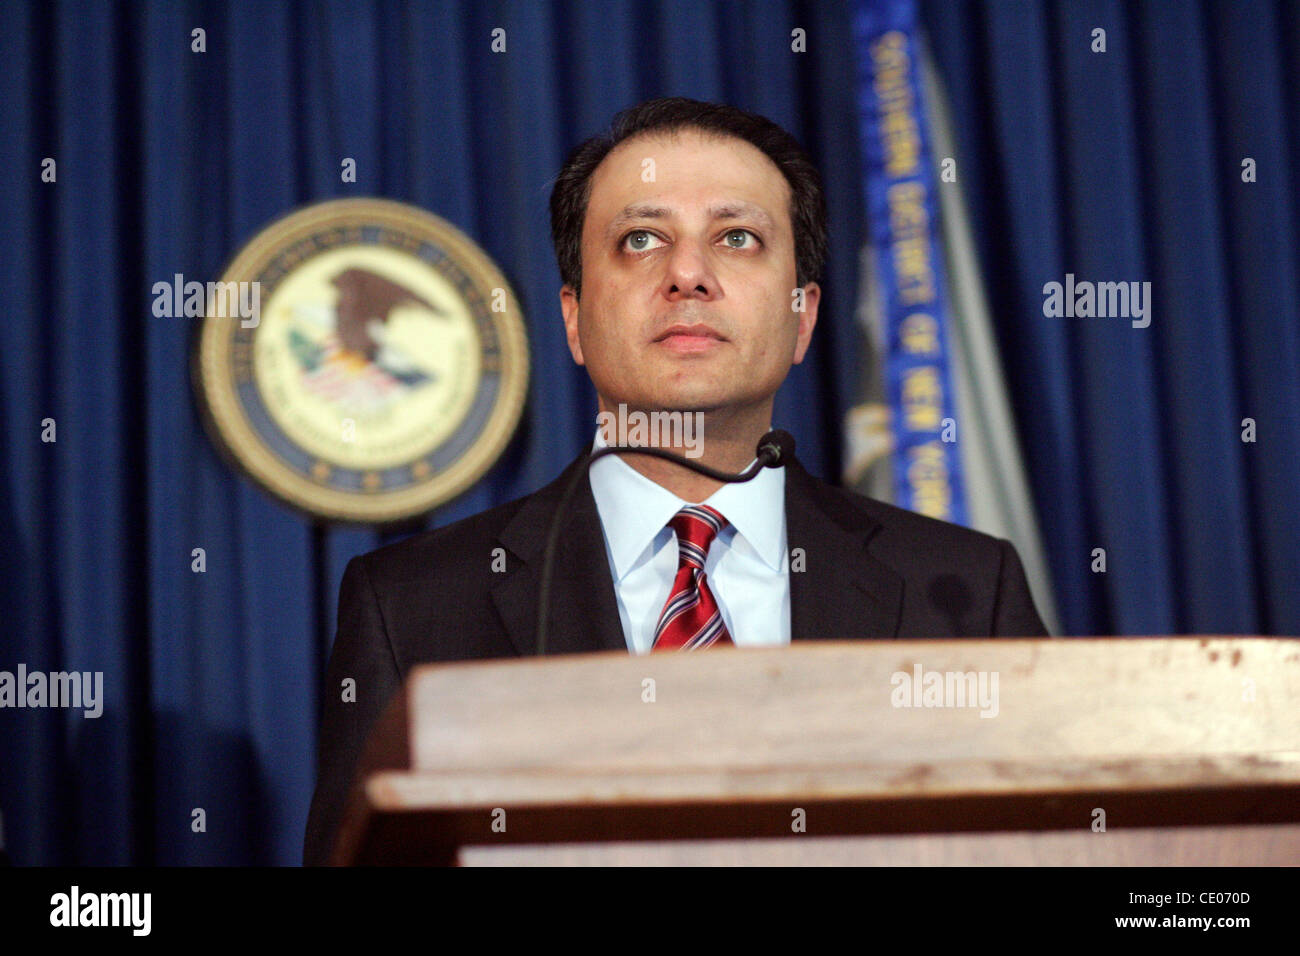 PREET BHARARA, the United States Attorney for the Southern District